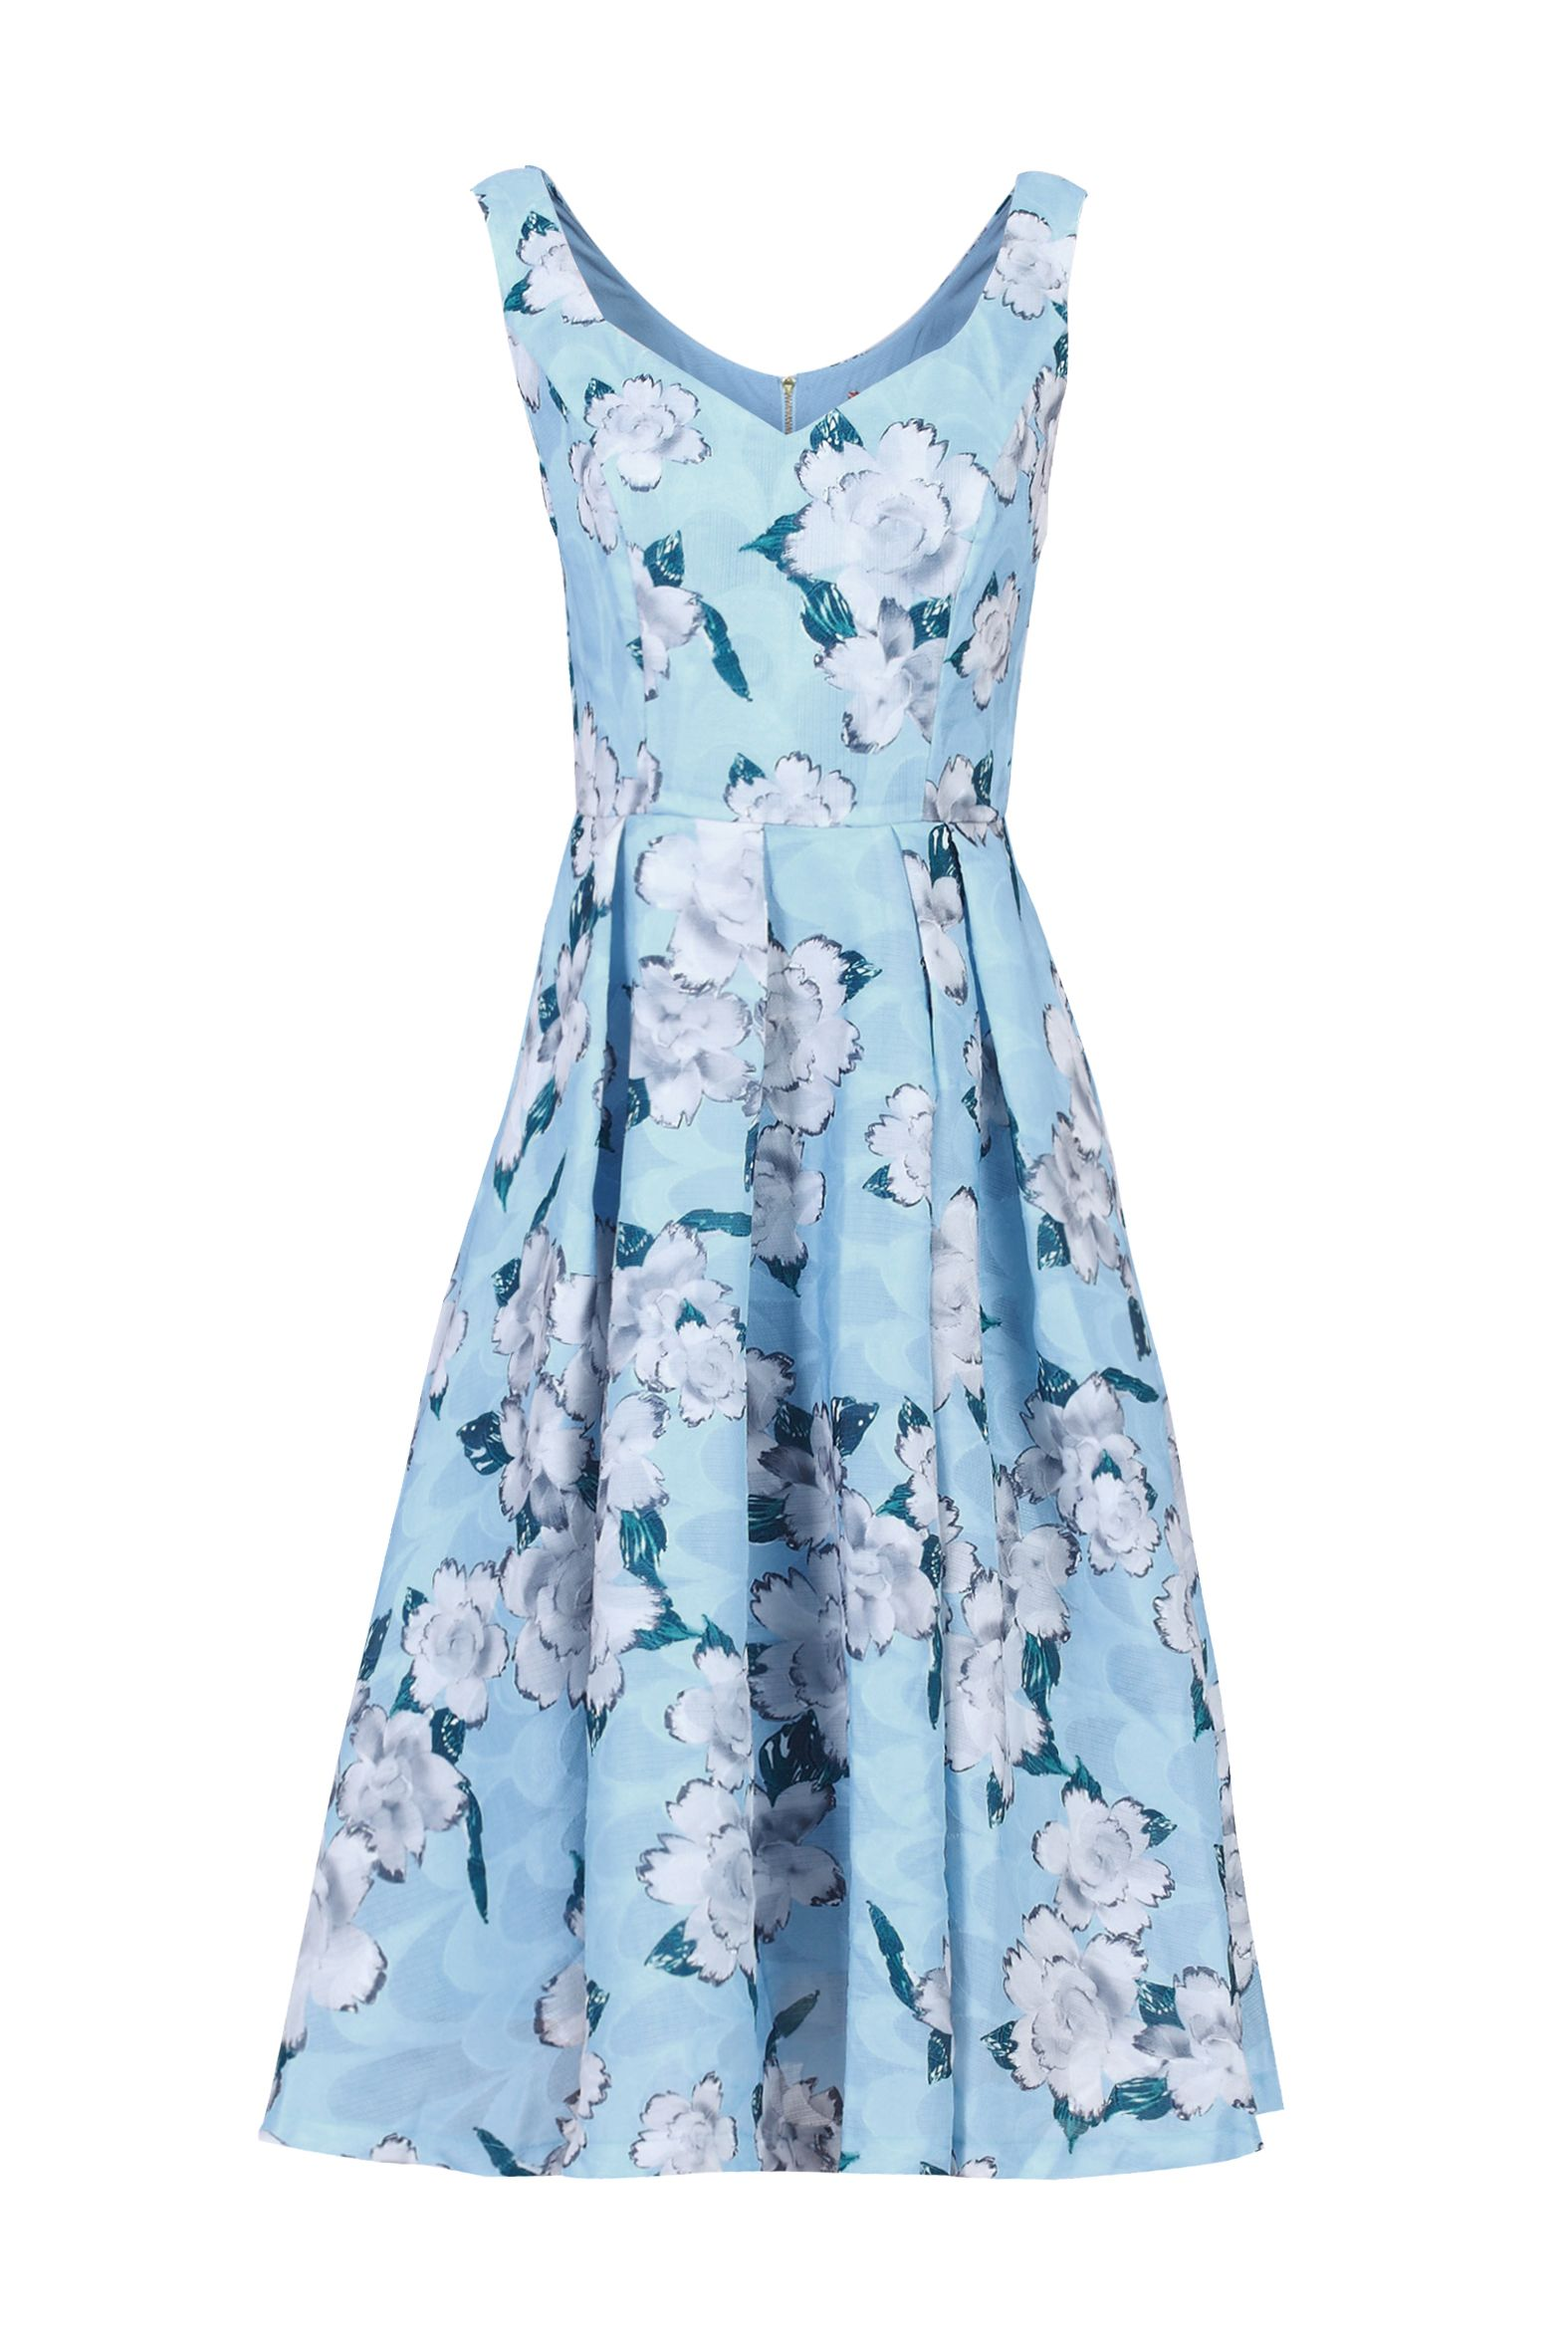 Jolie Moi Retro Floral Textured Prom Dress, Blue